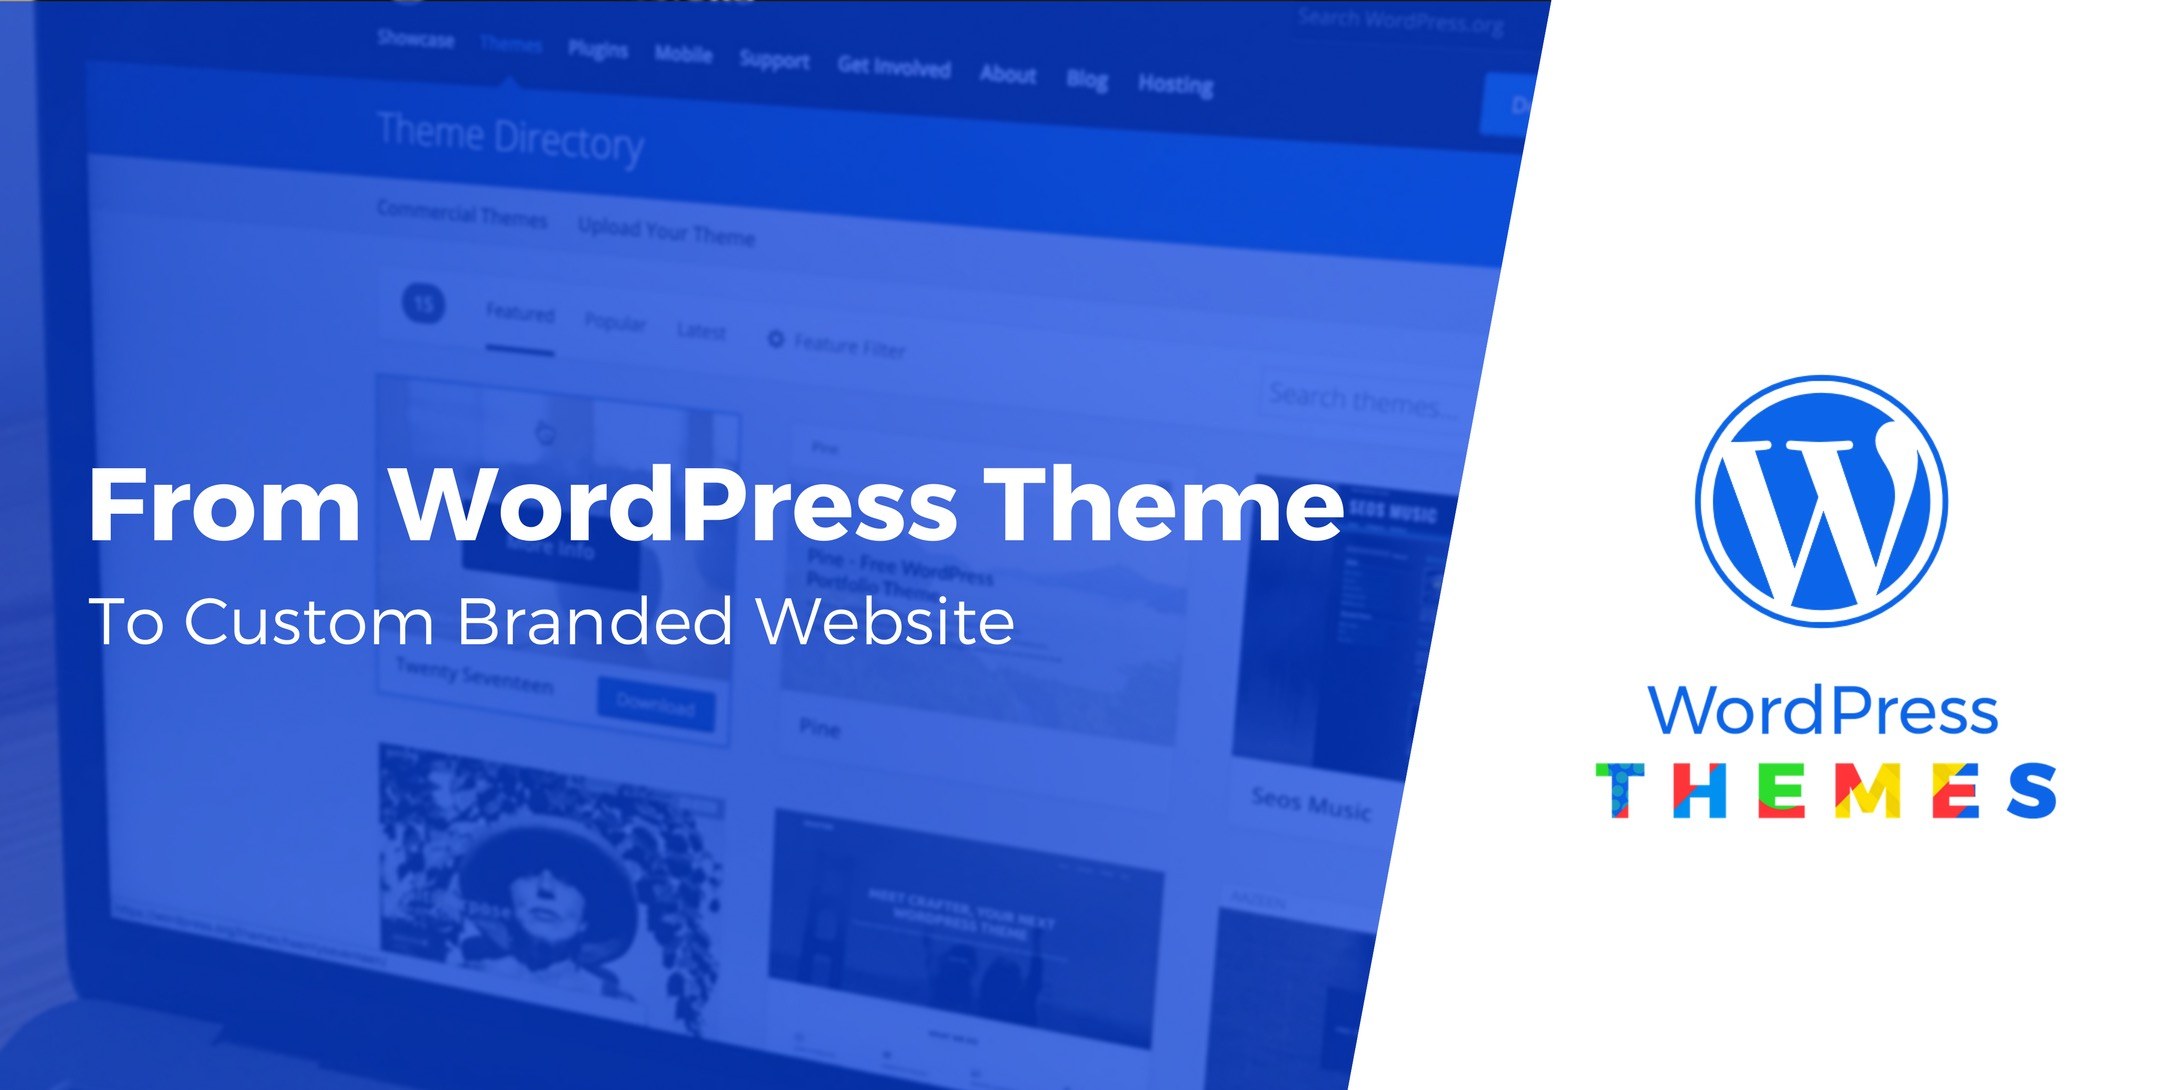 Turning a WordPress Theme Into a Custom Branded Website